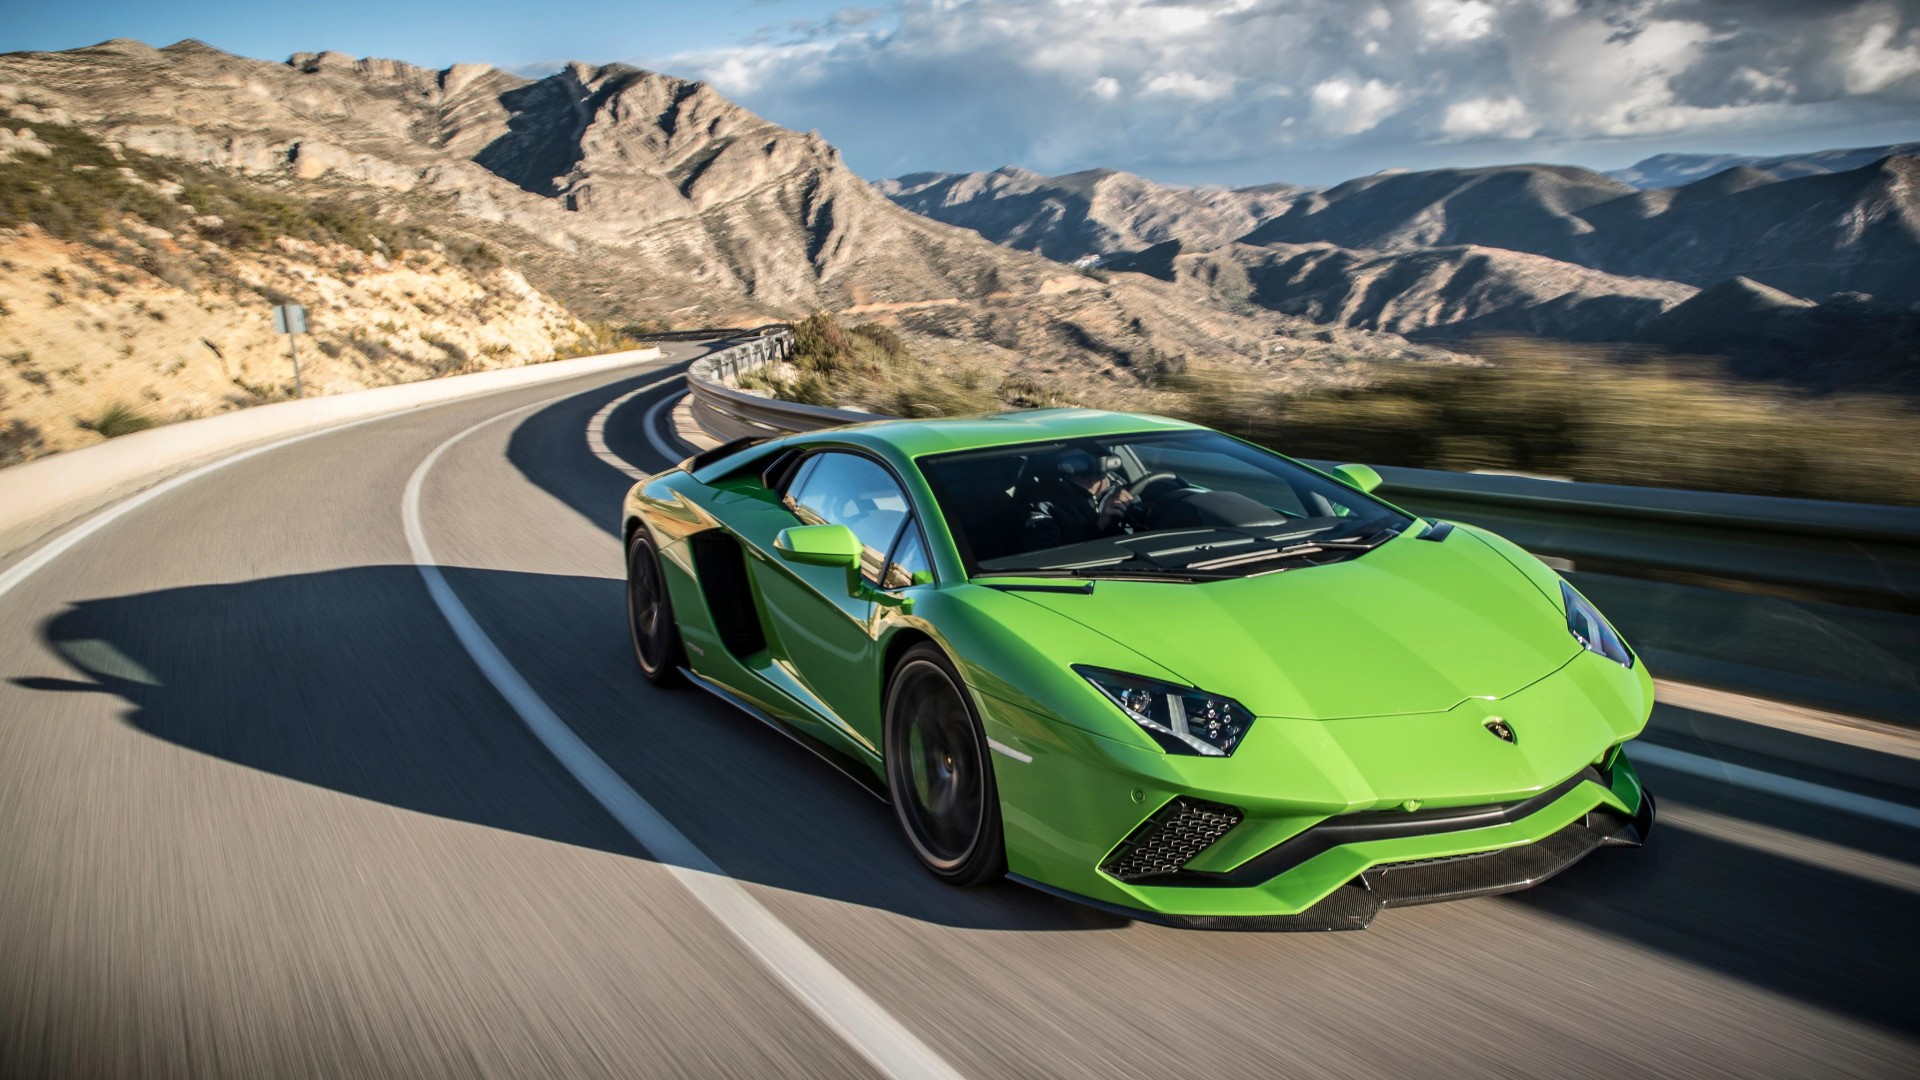 Lamborghini Aventador S 2017 4k Wallpaper Hd Car